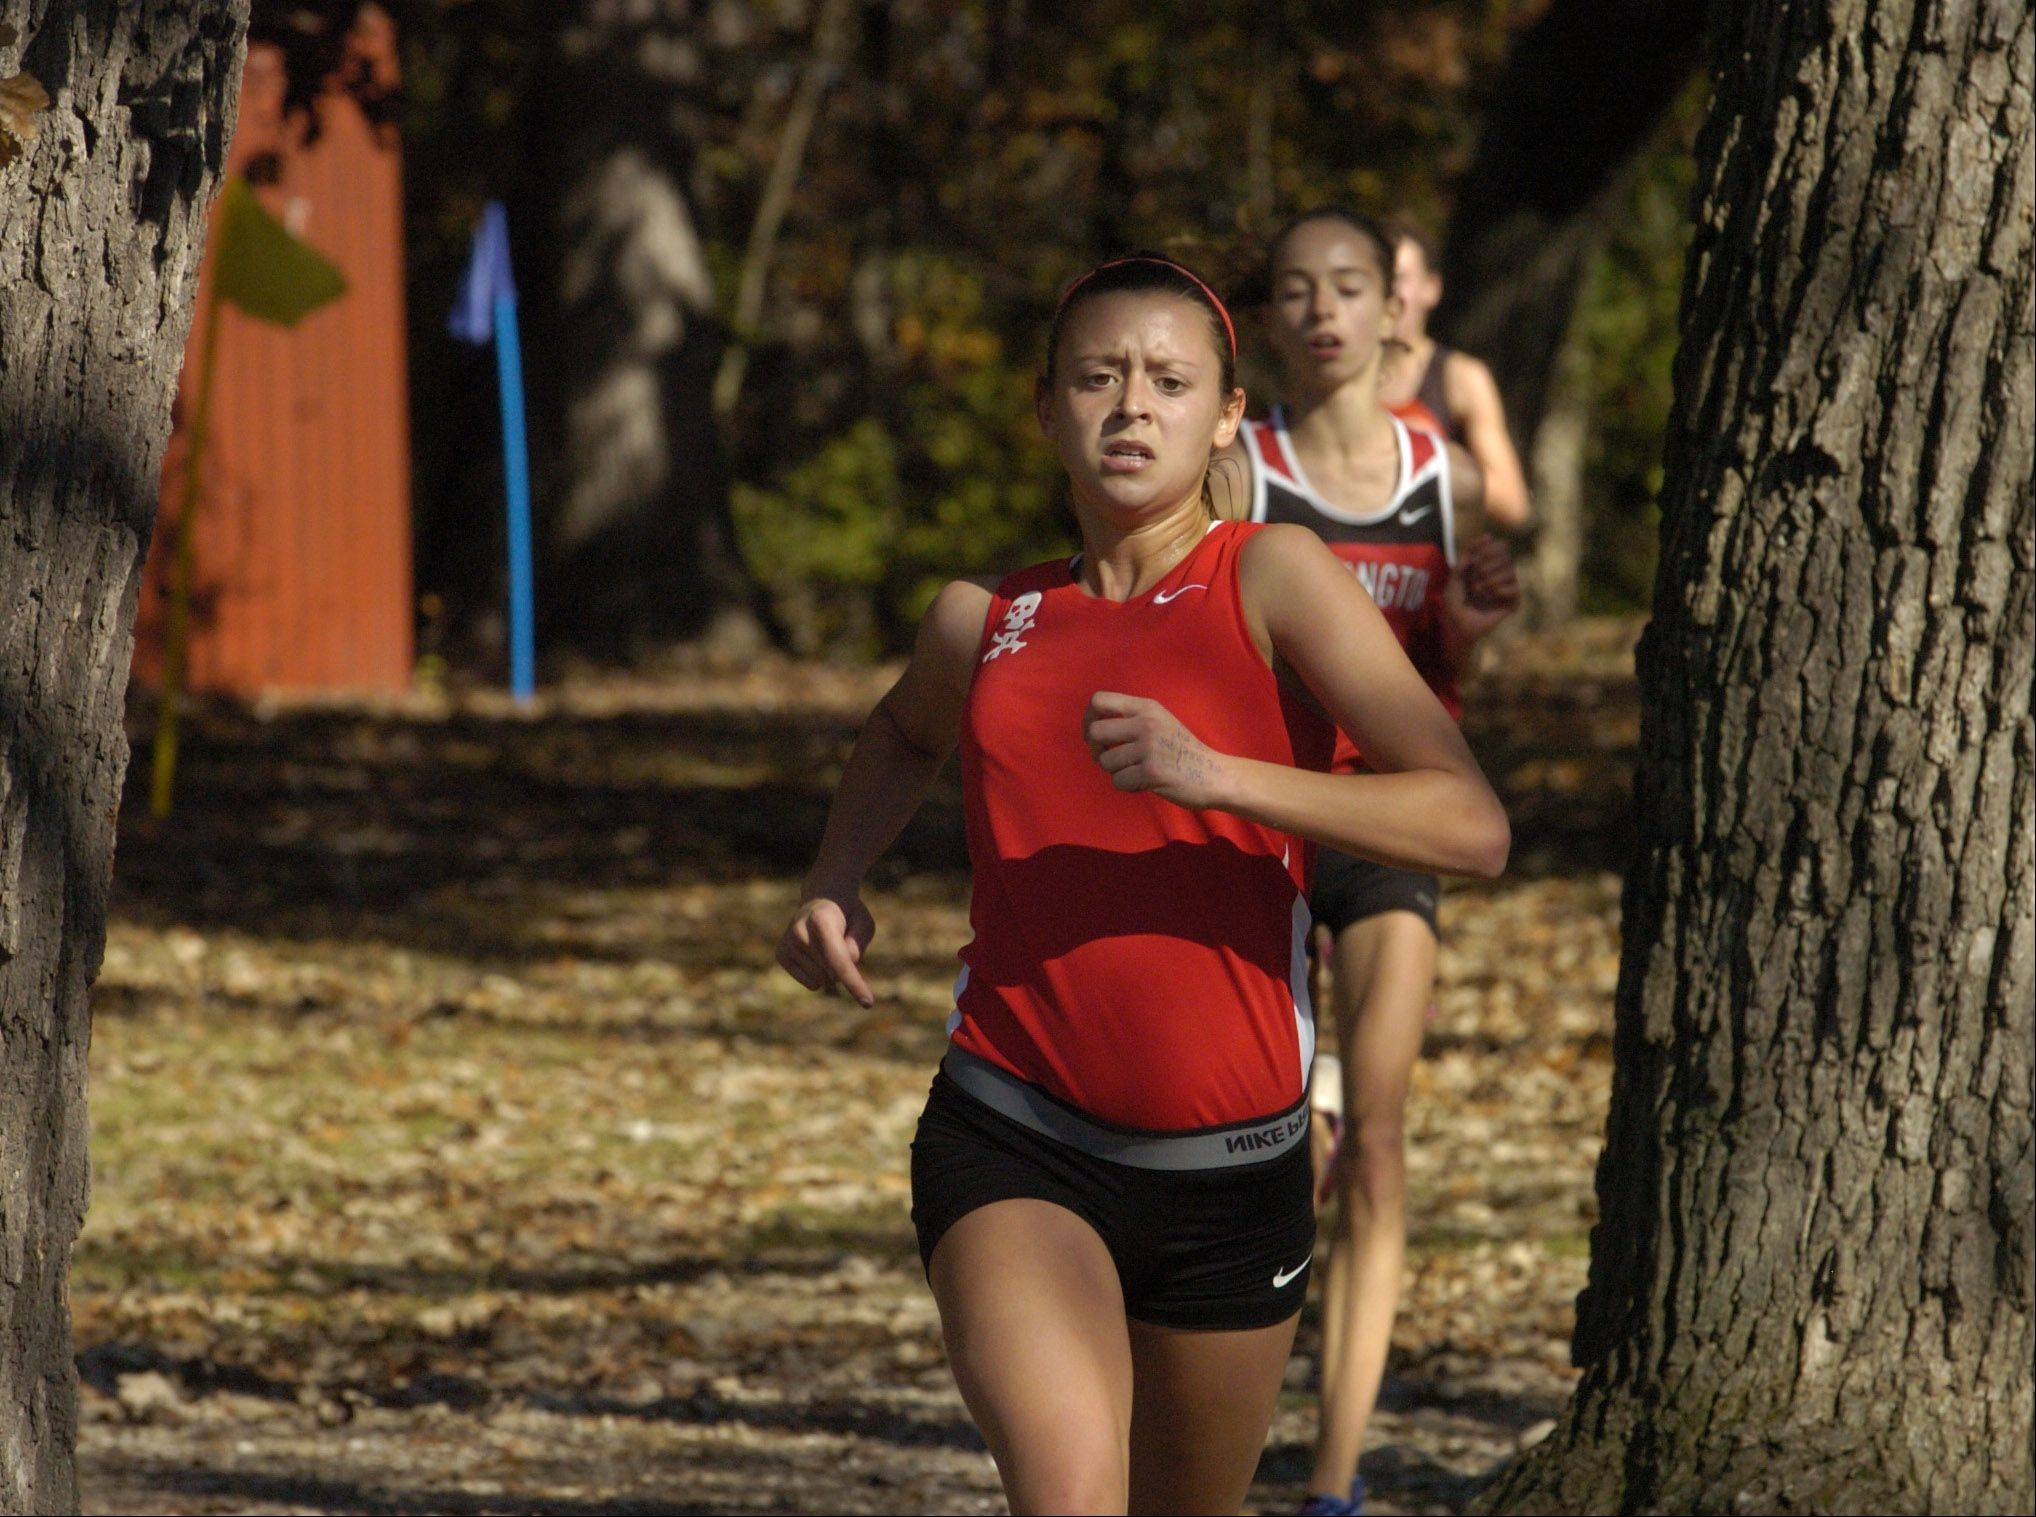 Palatine�s Tess Wasowicz leads Barrington�s Lauren Conroy through the woods on the way to winning last weekend�s Grant regional.